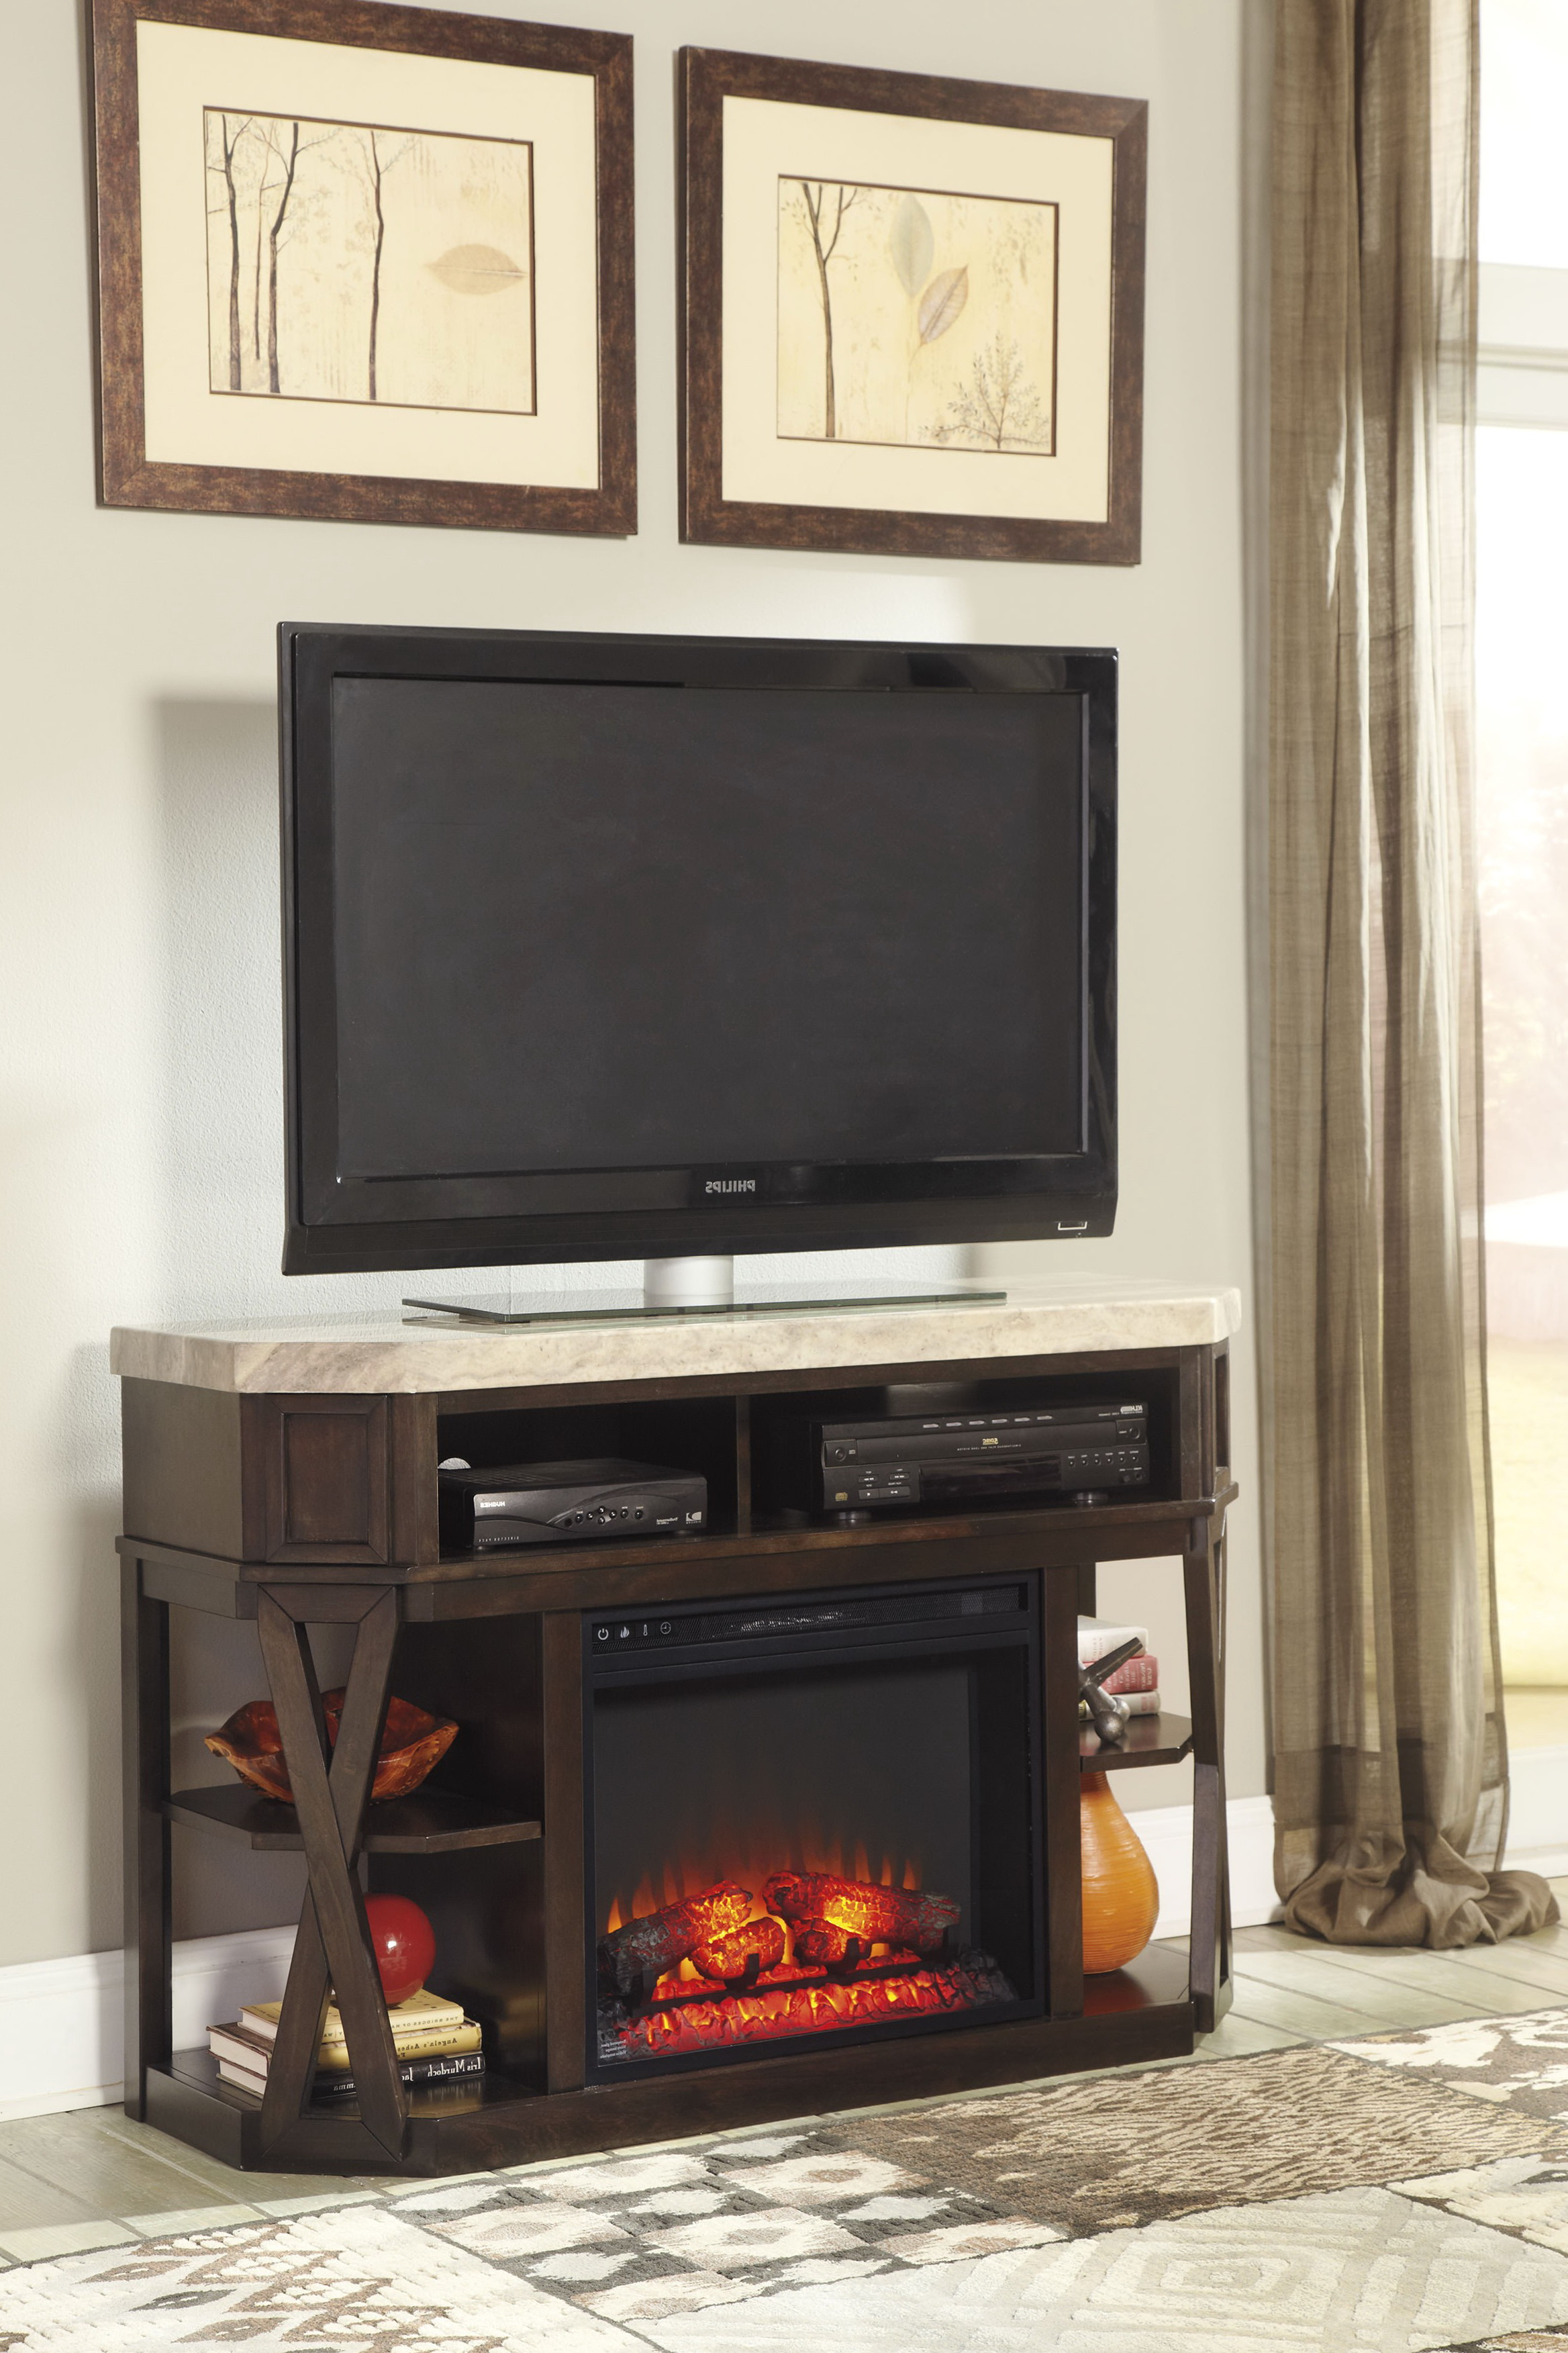 Ashley Furniture Fireplace Entertainment Center Home